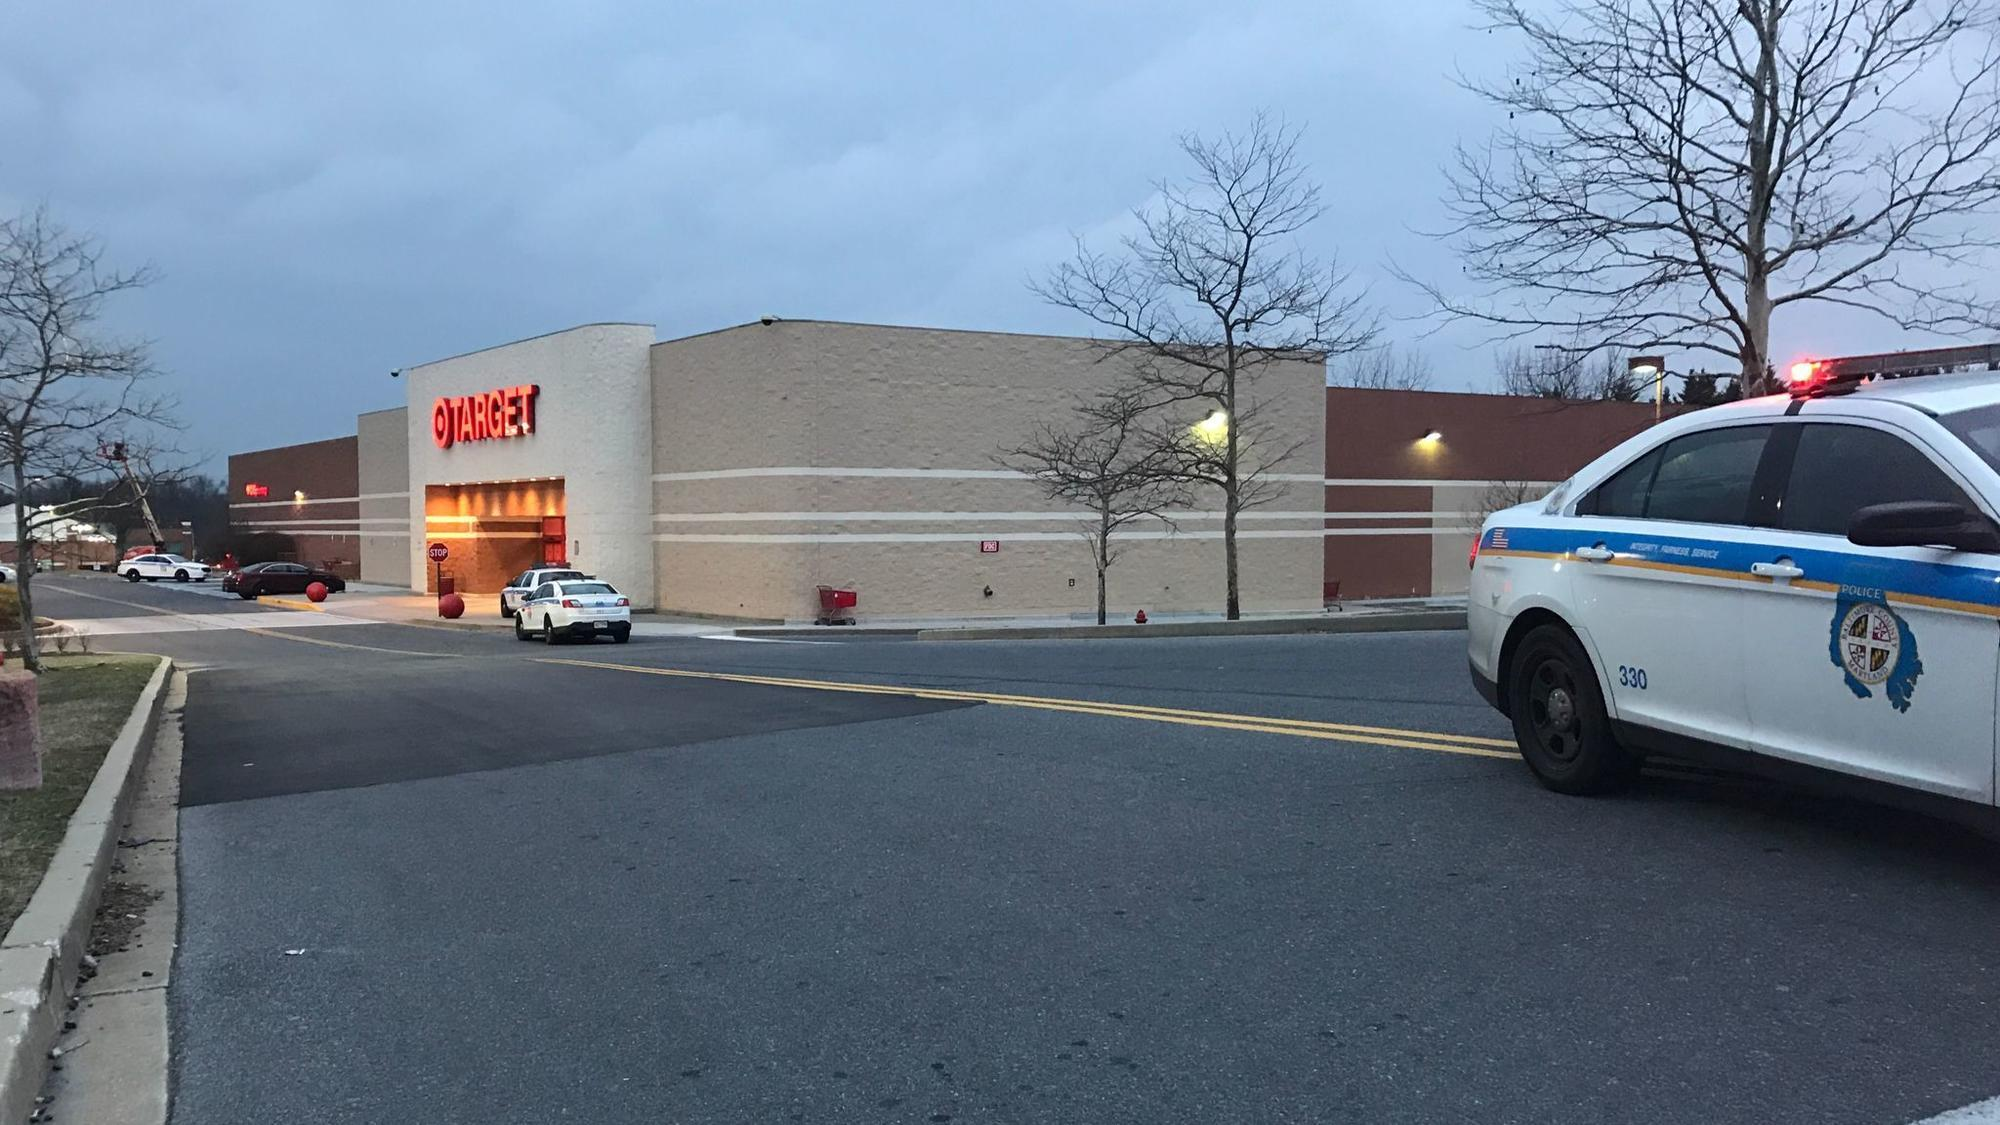 Baltimore County police investigating reports of shots fired at Target in Owings Mills